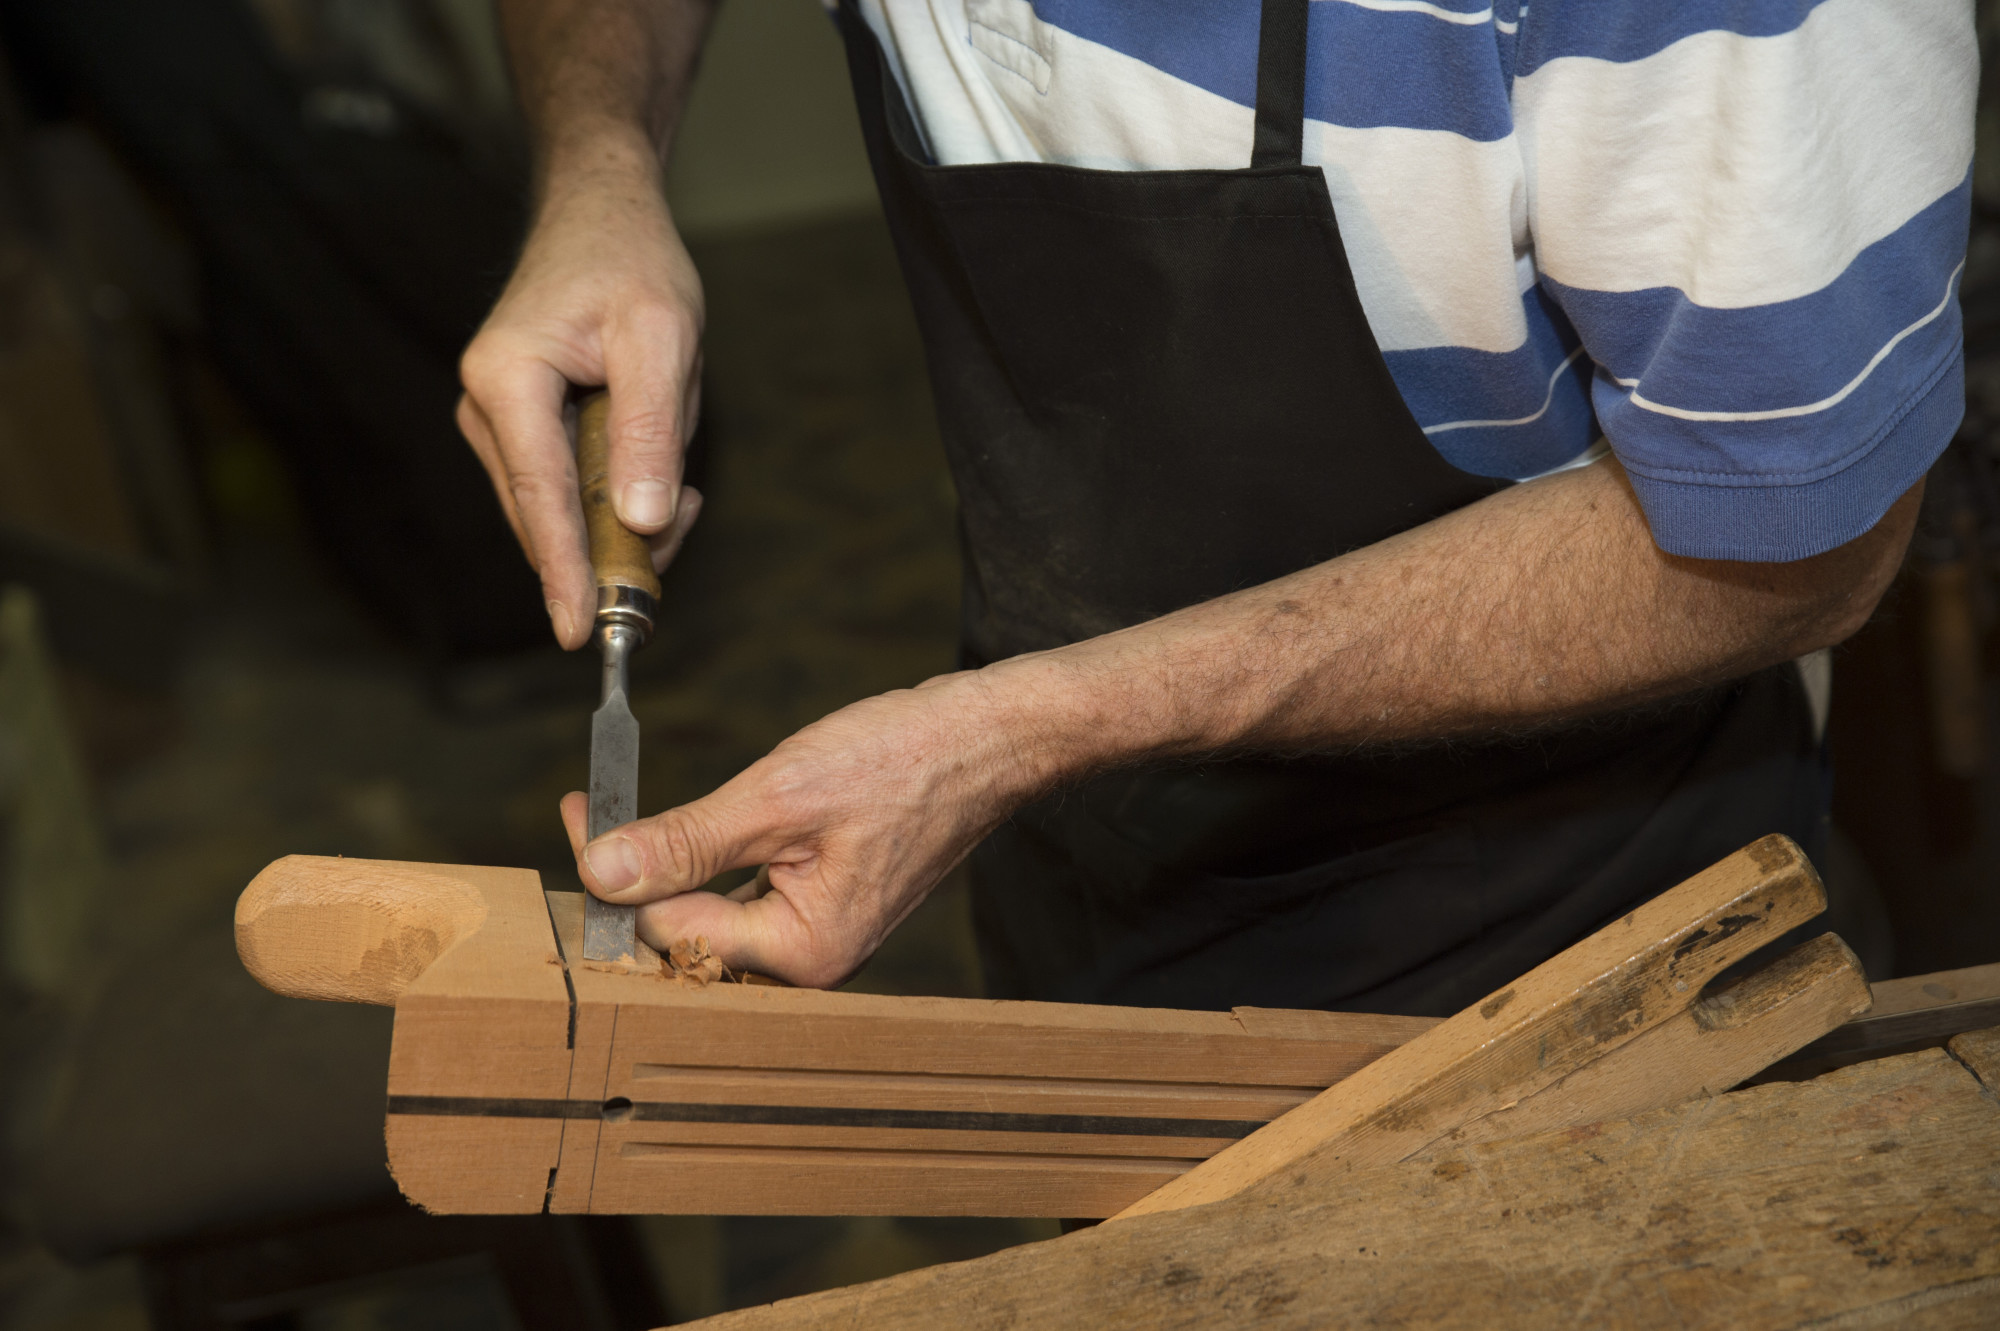 common woodworking mistakes